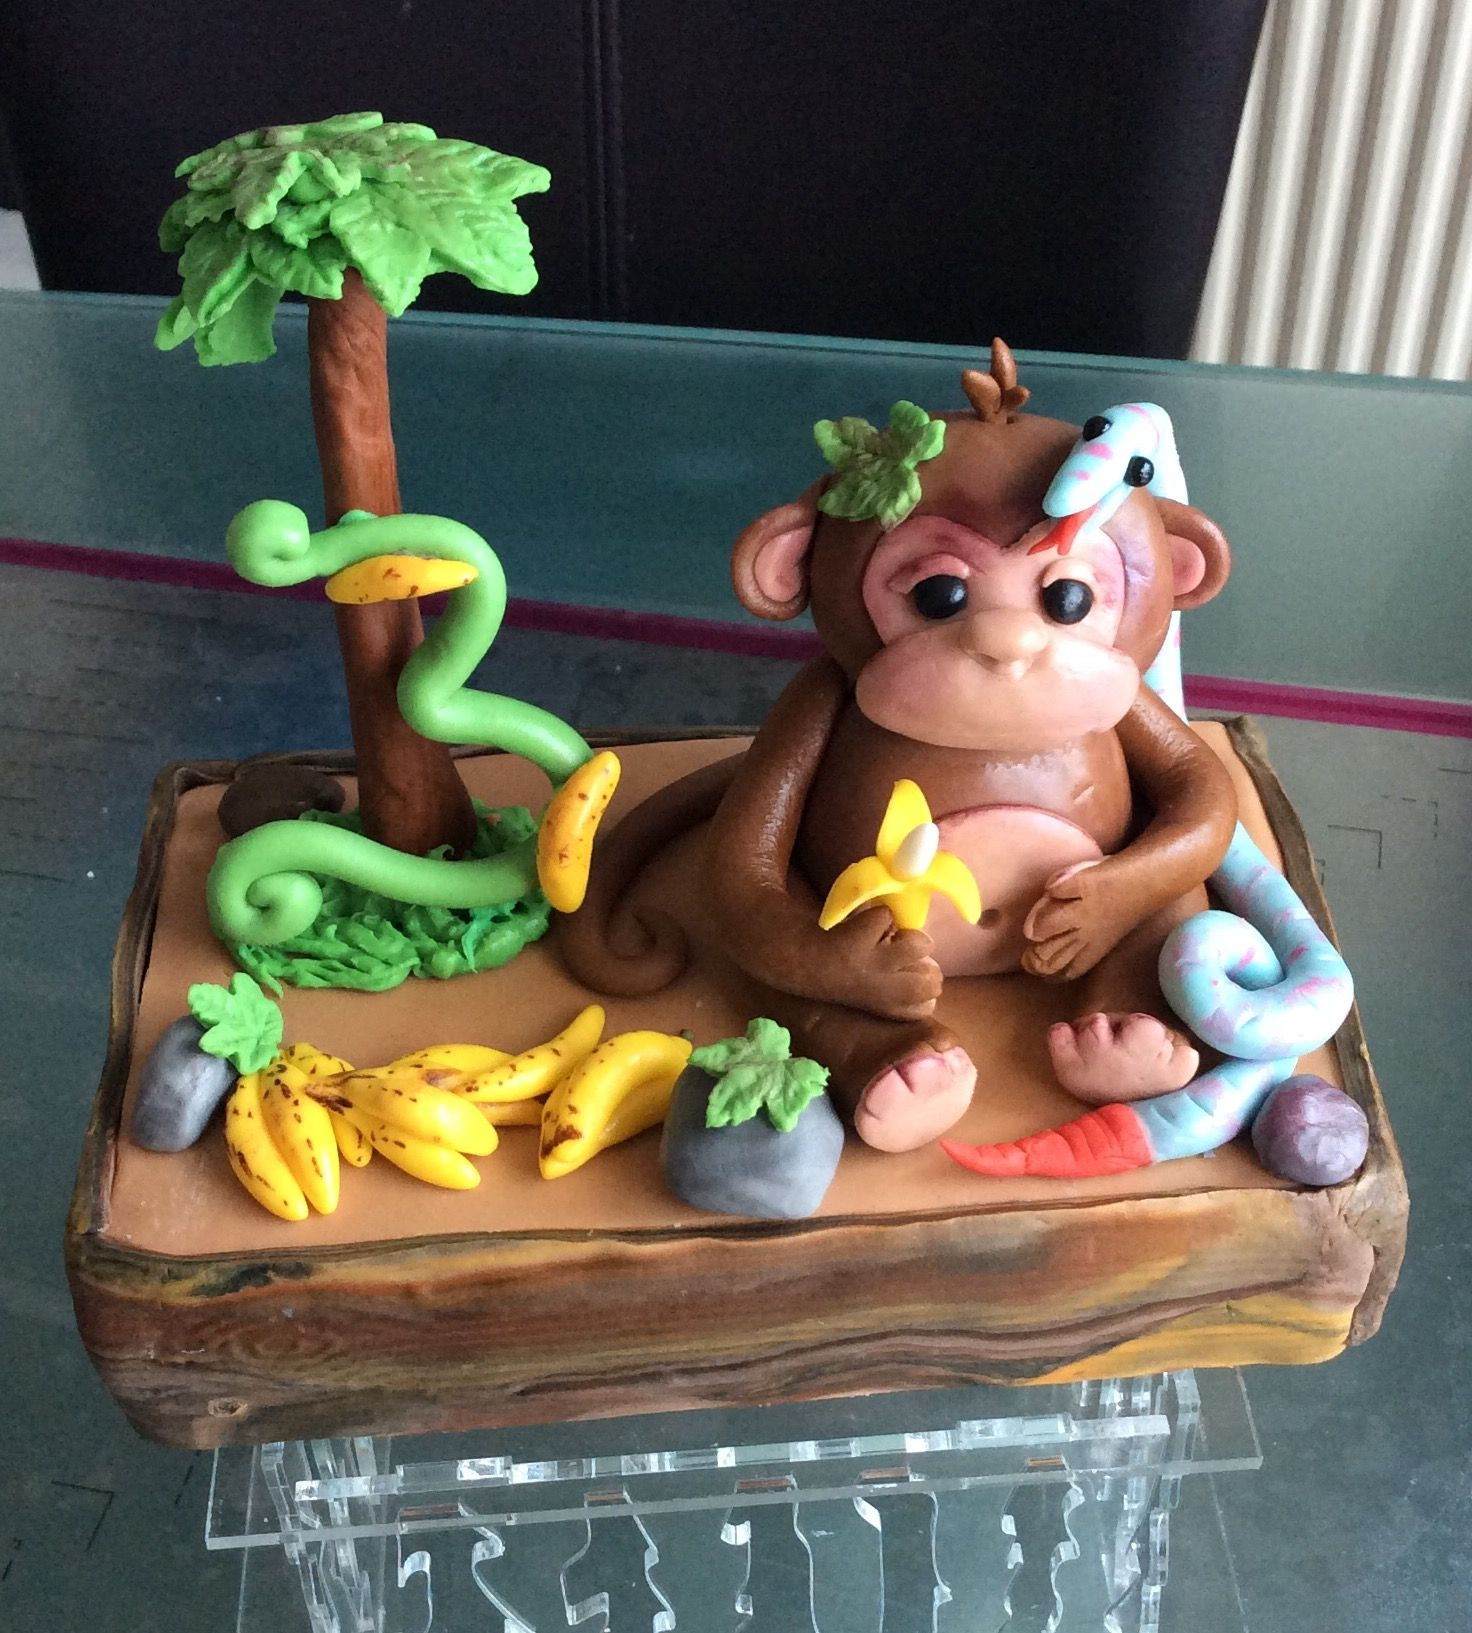 Monkey snake and palm tree birthday cake topper cakes galore monkey snake and palm tree birthday cake topper biocorpaavc Images